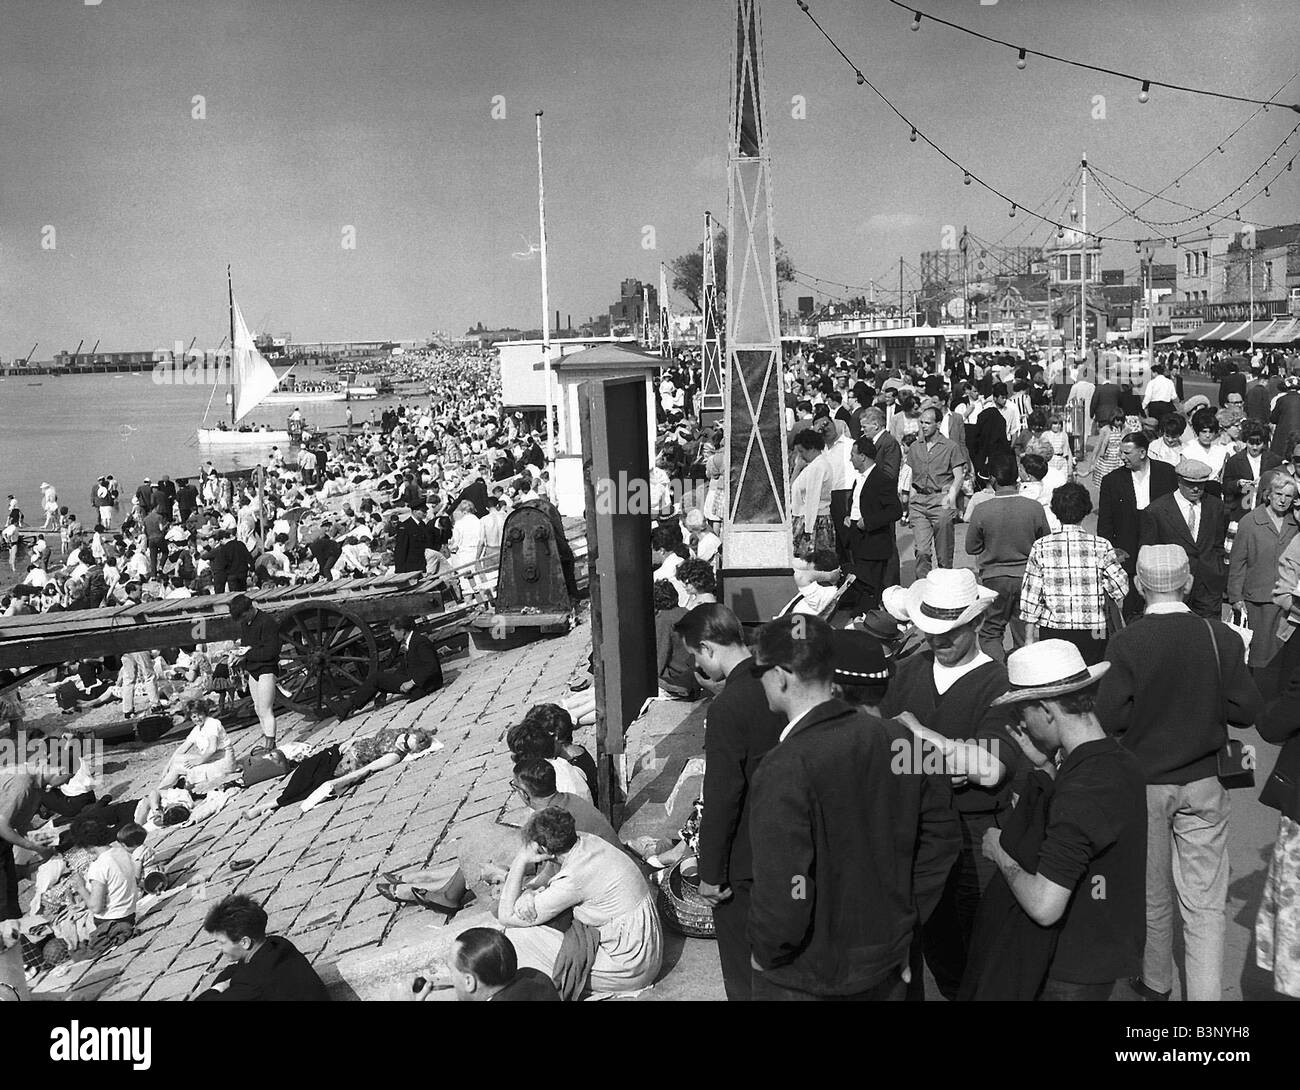 The Crowded Beaches at Southend For the British the seaside has always been the favourite holiday destination so - Stock Image